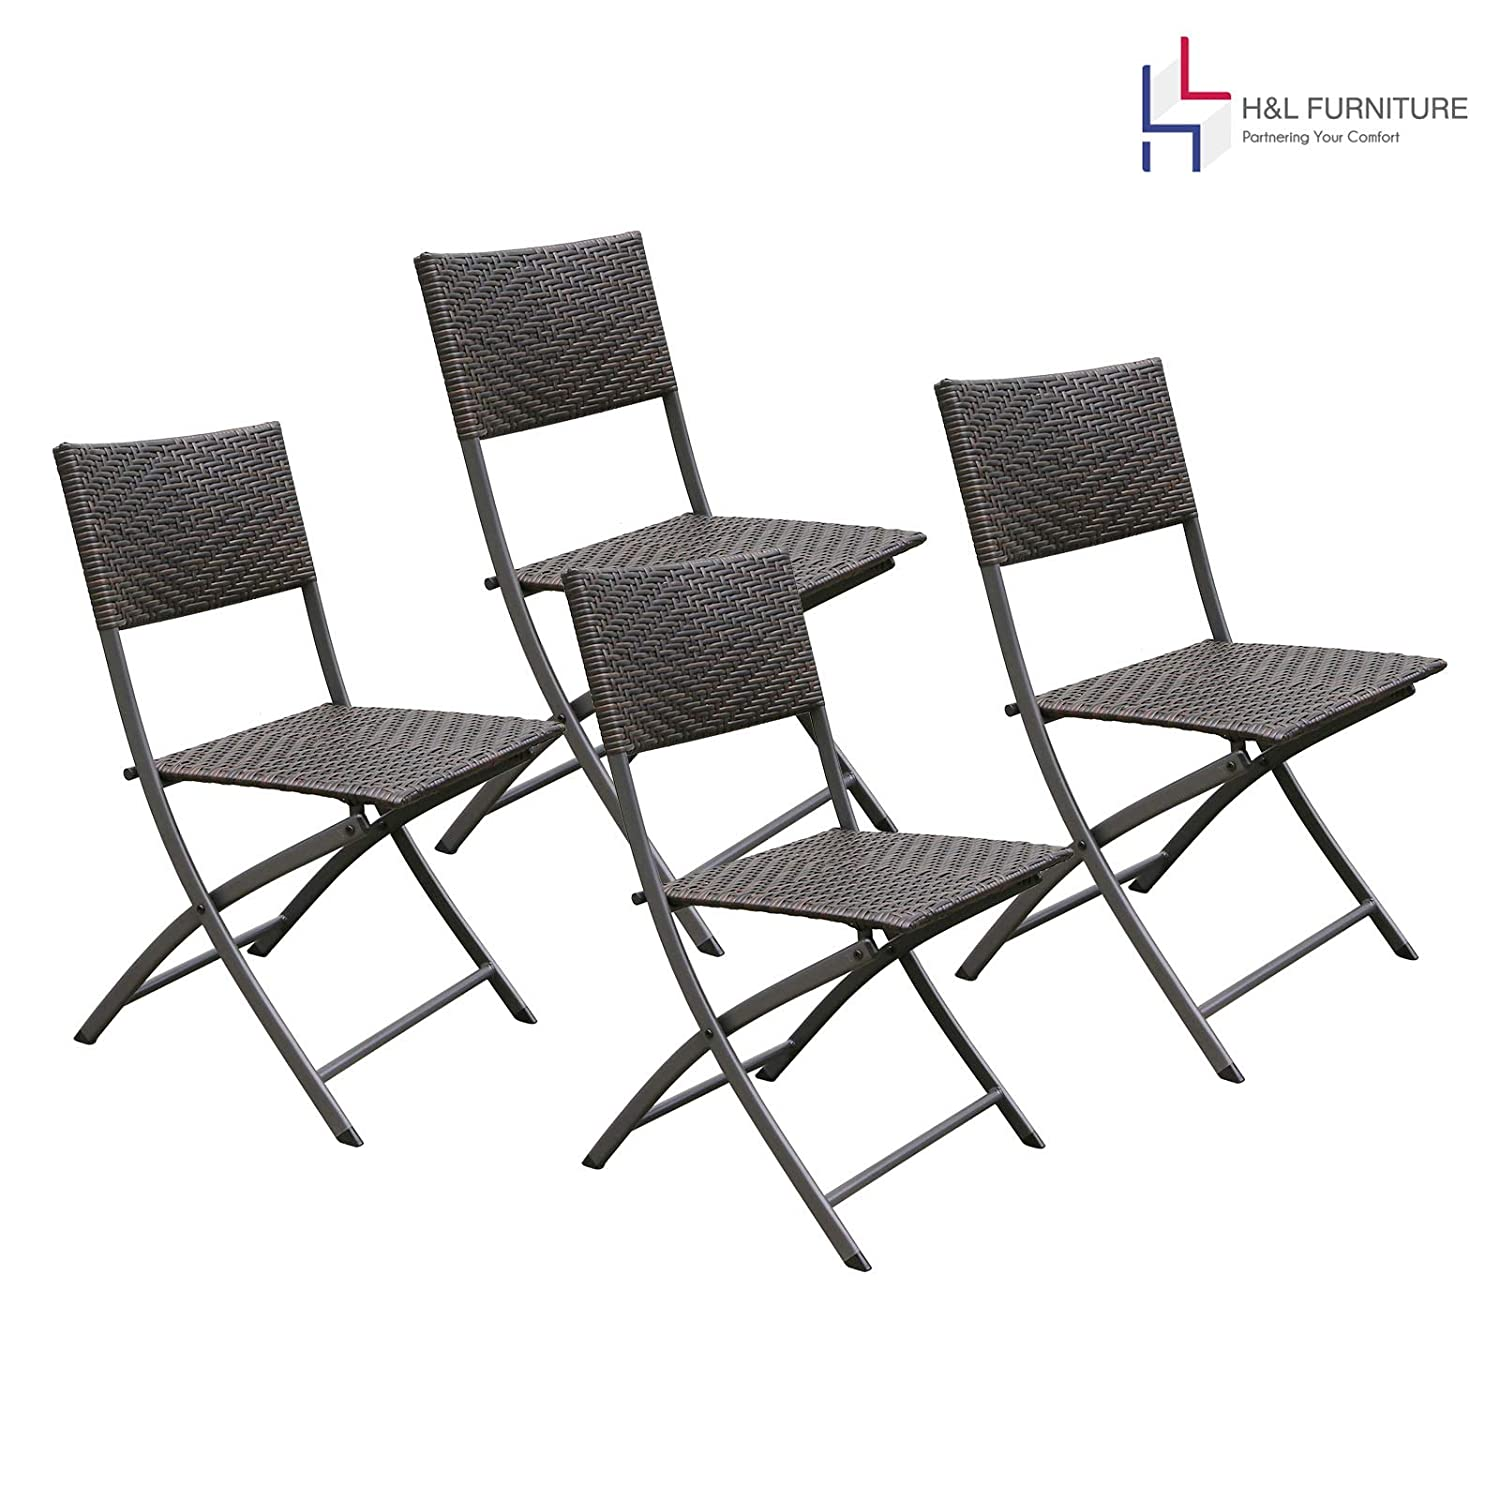 HL Patio 4-Pack Folding Chairs, Portable for Outdoor Camping, Beach, Deck Dining, Espresso Brown, Resin Rattan Steel Folding Chairs, 1 Year Warranty, No Assembly Needed